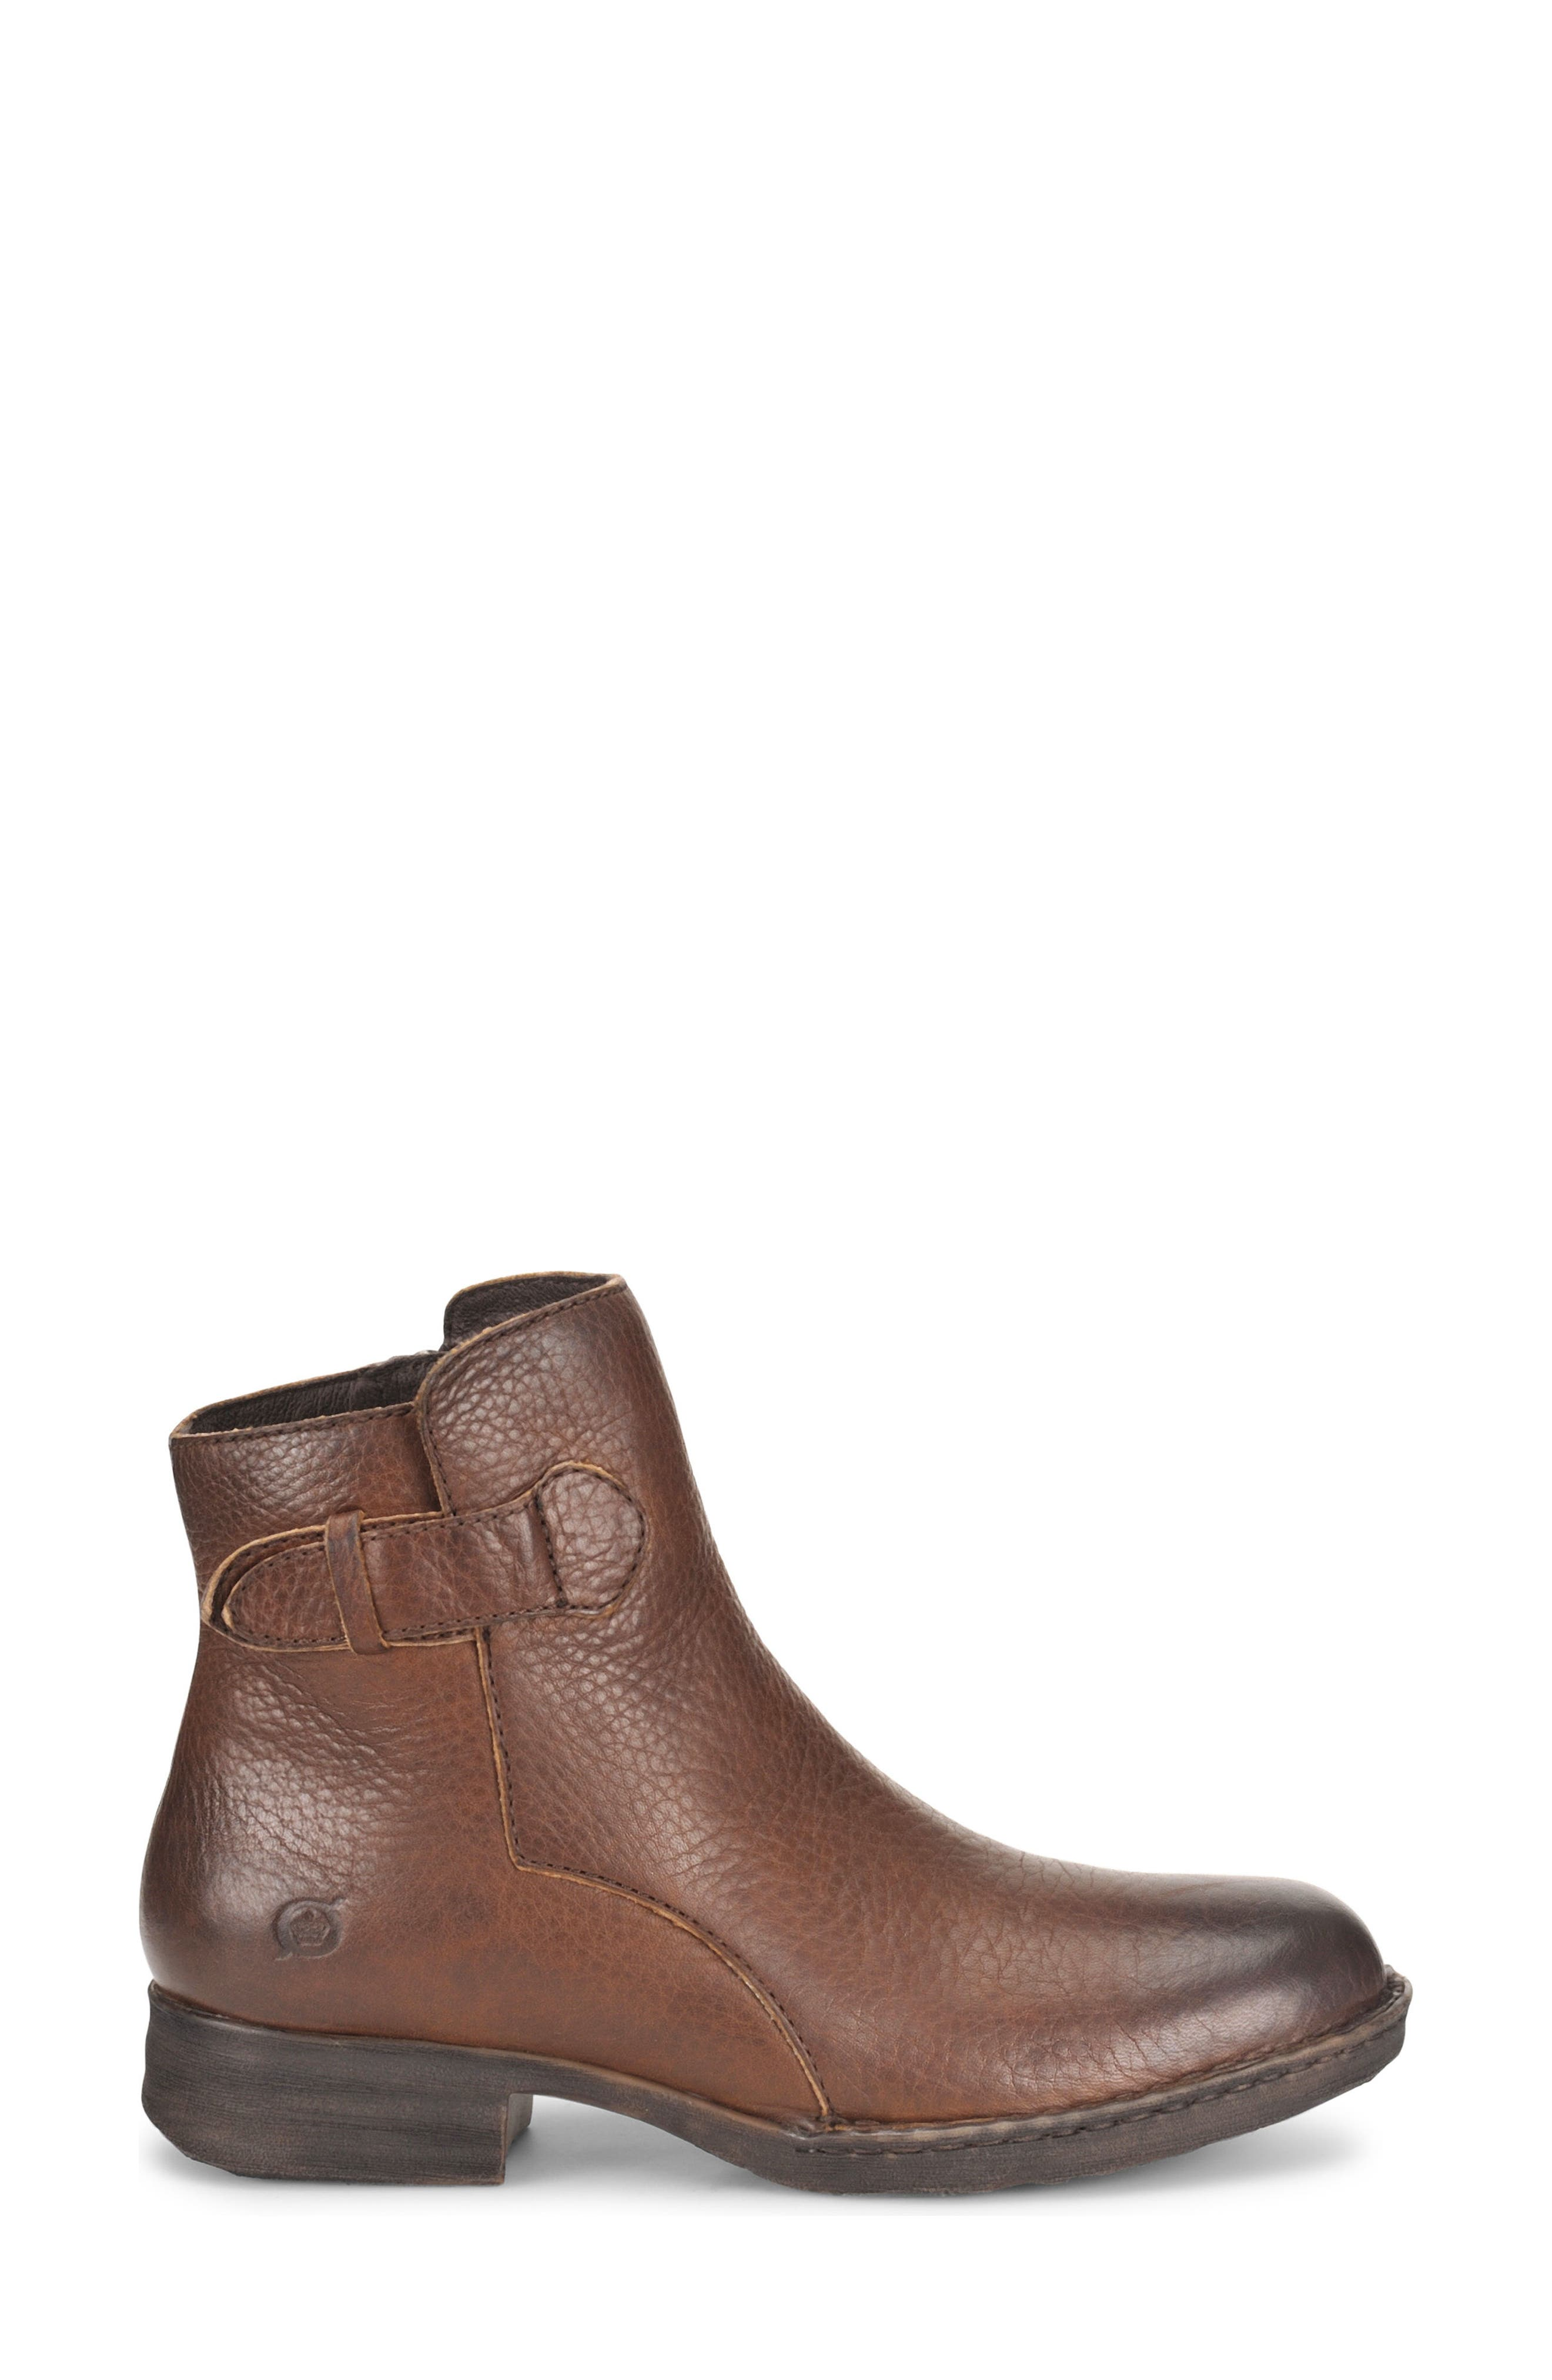 Carbine Bootie,                             Alternate thumbnail 3, color,                             Brown Leather